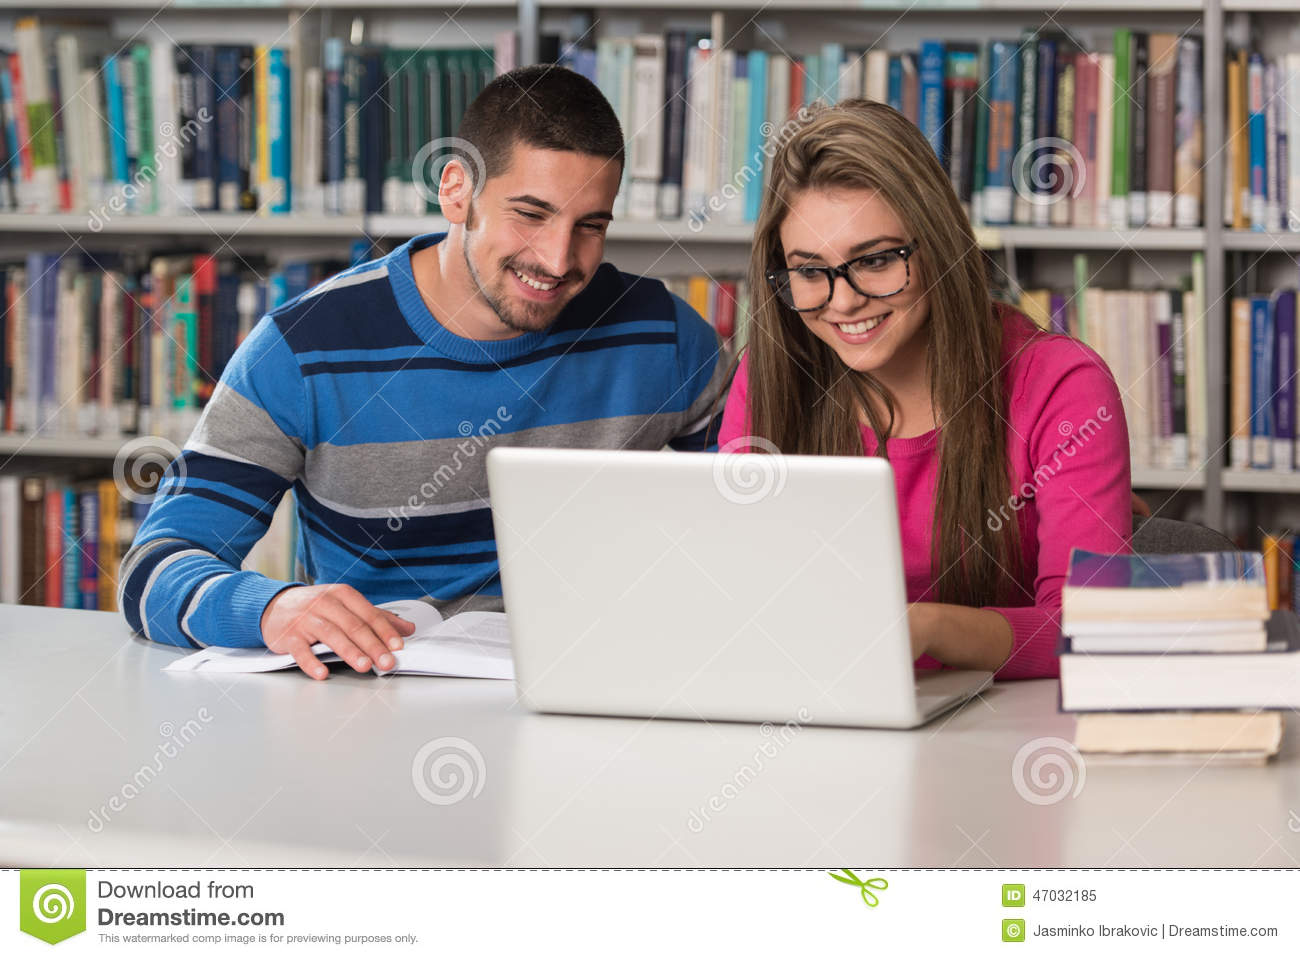 College students who use online dating